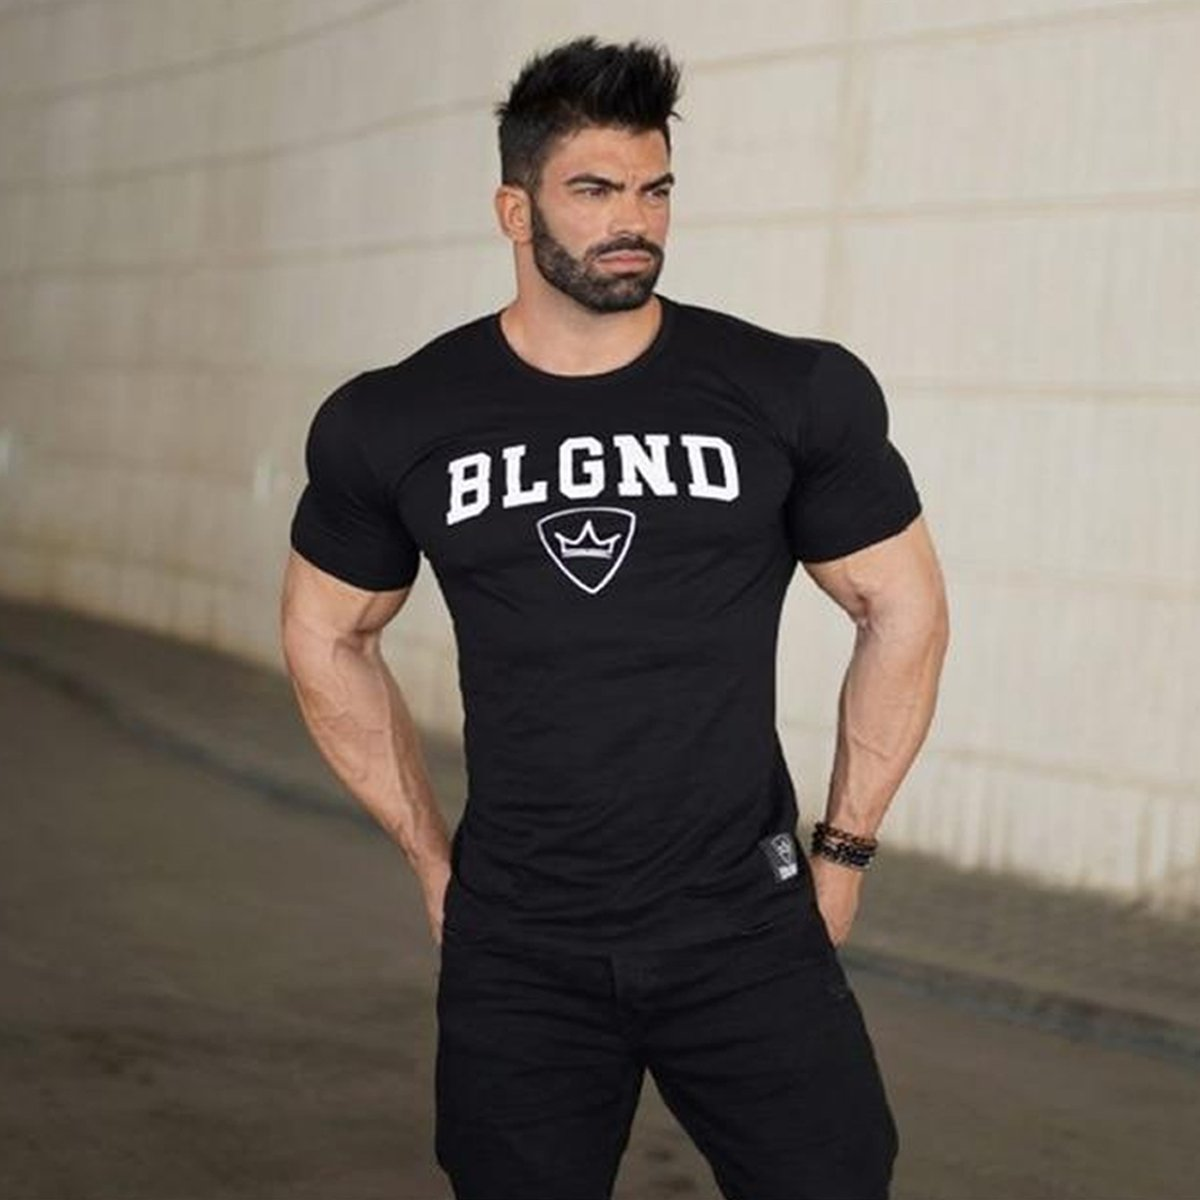 Comfortable to Wear Elastic Workout T-Shirt for Men